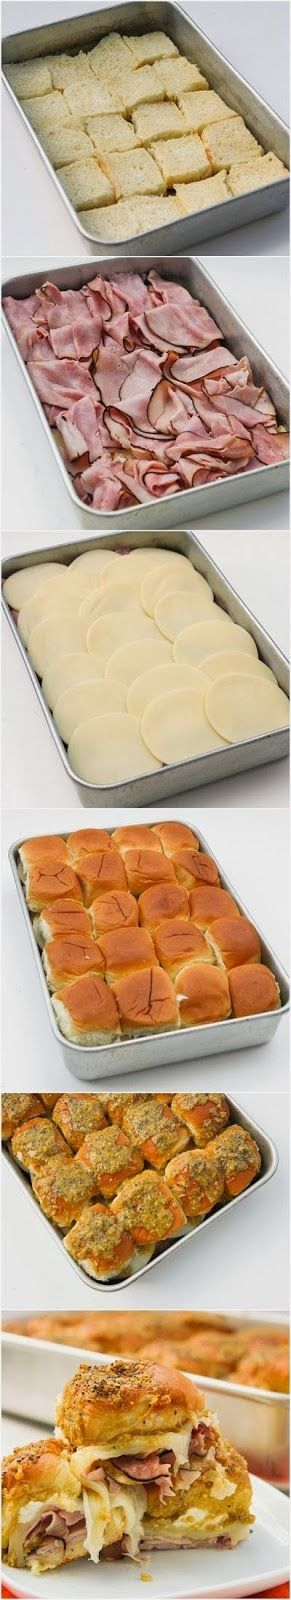 How To ham and cheese sandwiches - great for superbowl party